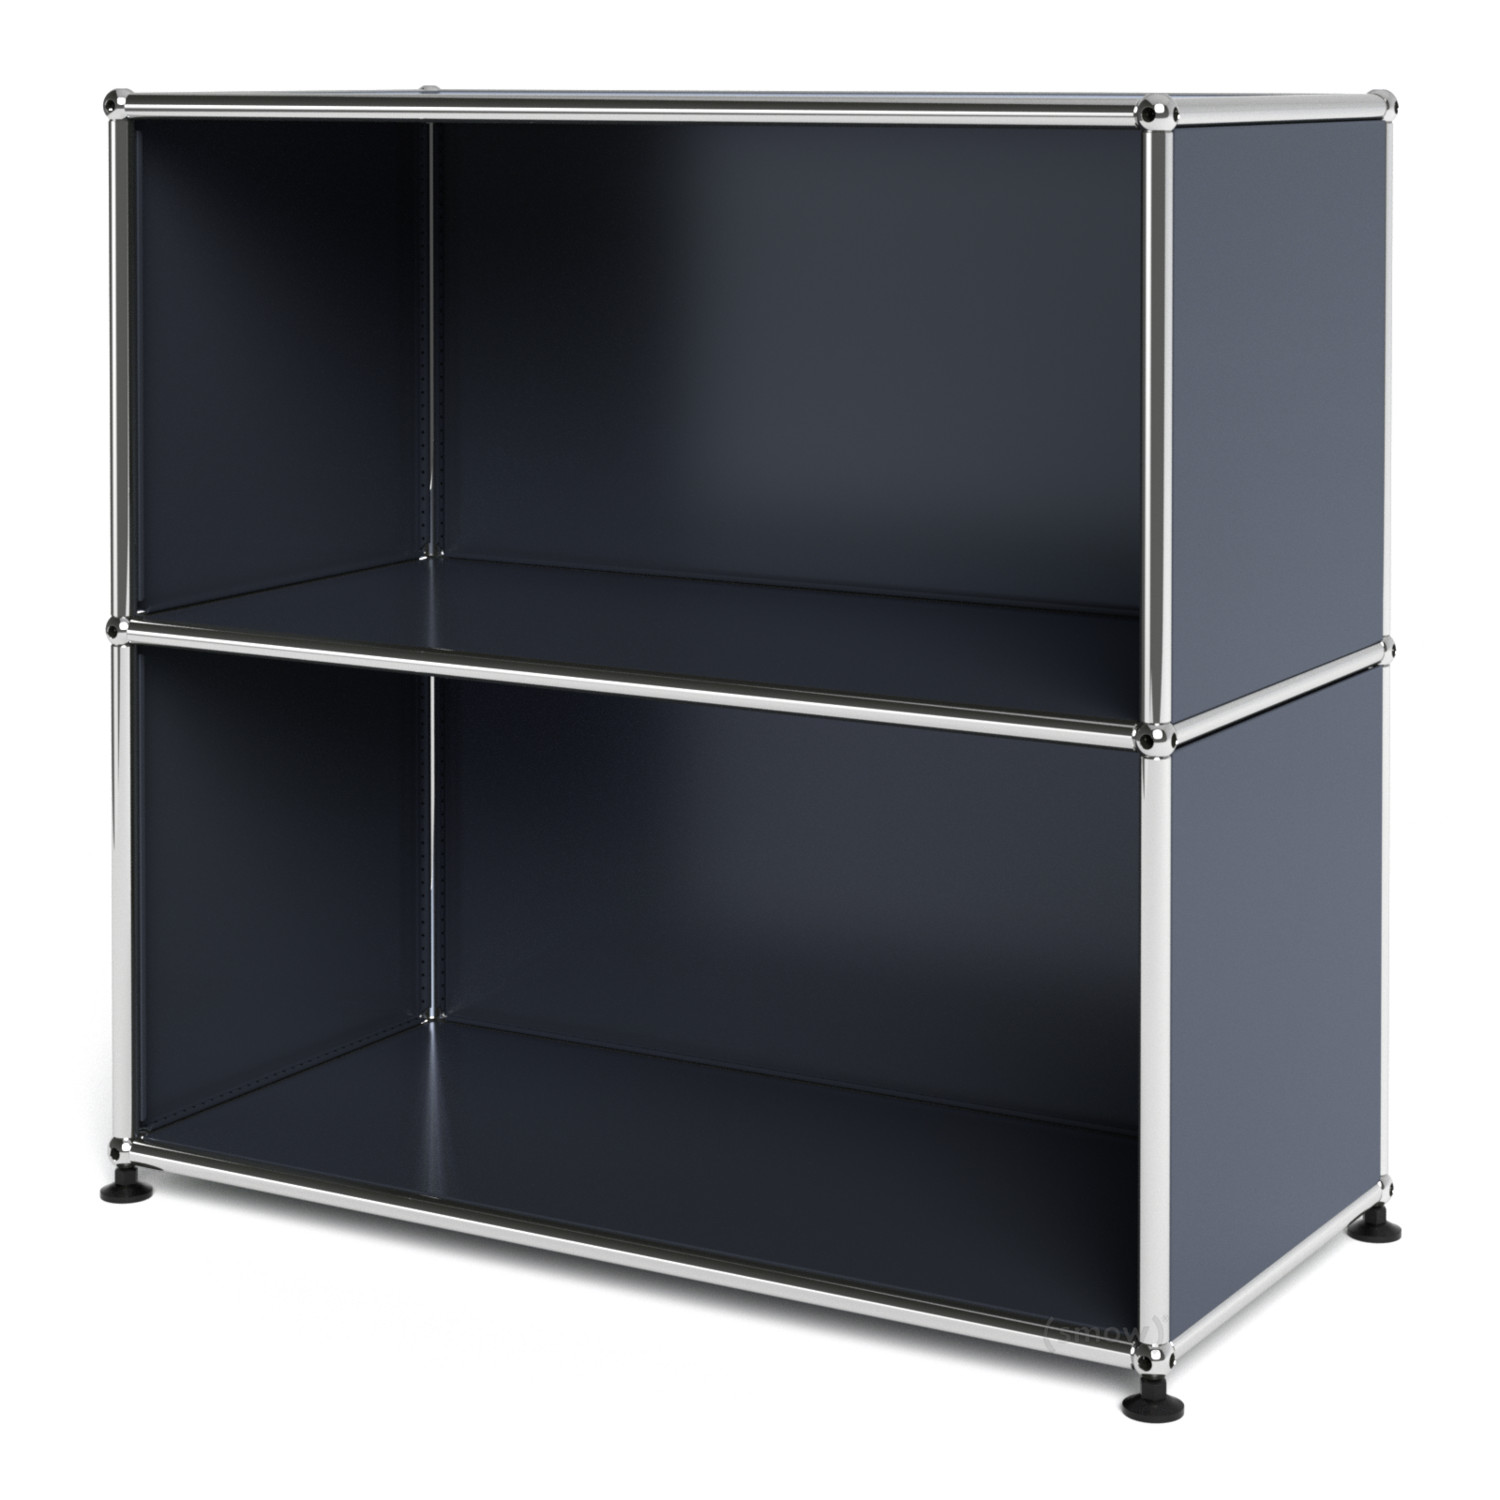 Usm haller sideboard m open anthracite ral 7016 by fritz for Sideboard usm